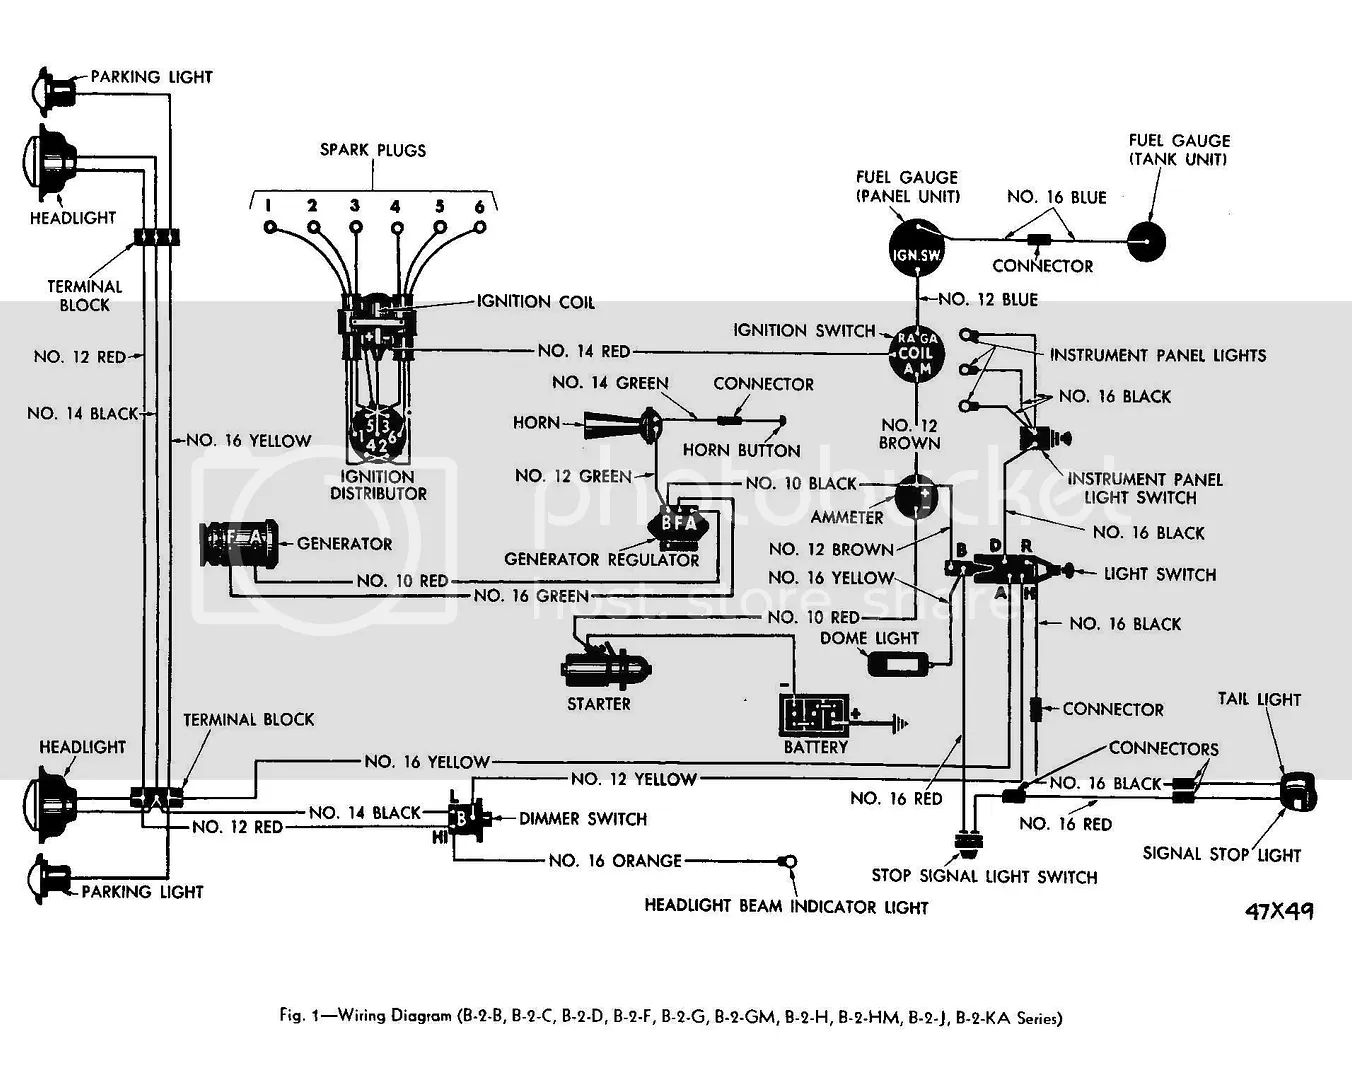 1953 willys wagon wiring diagram